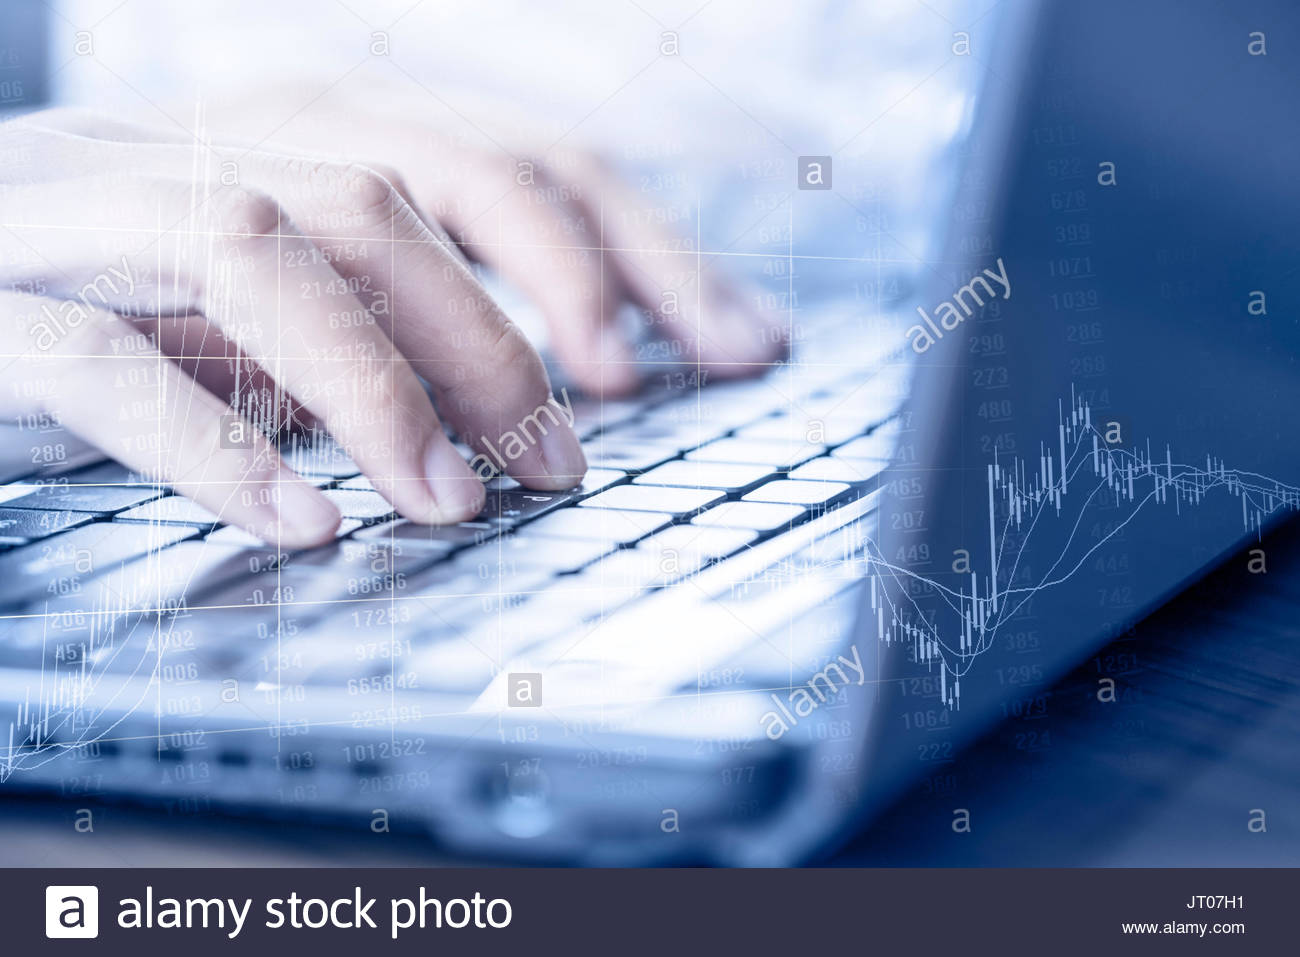 Stock market economy and network finance foreign exchange trading - Stock Image